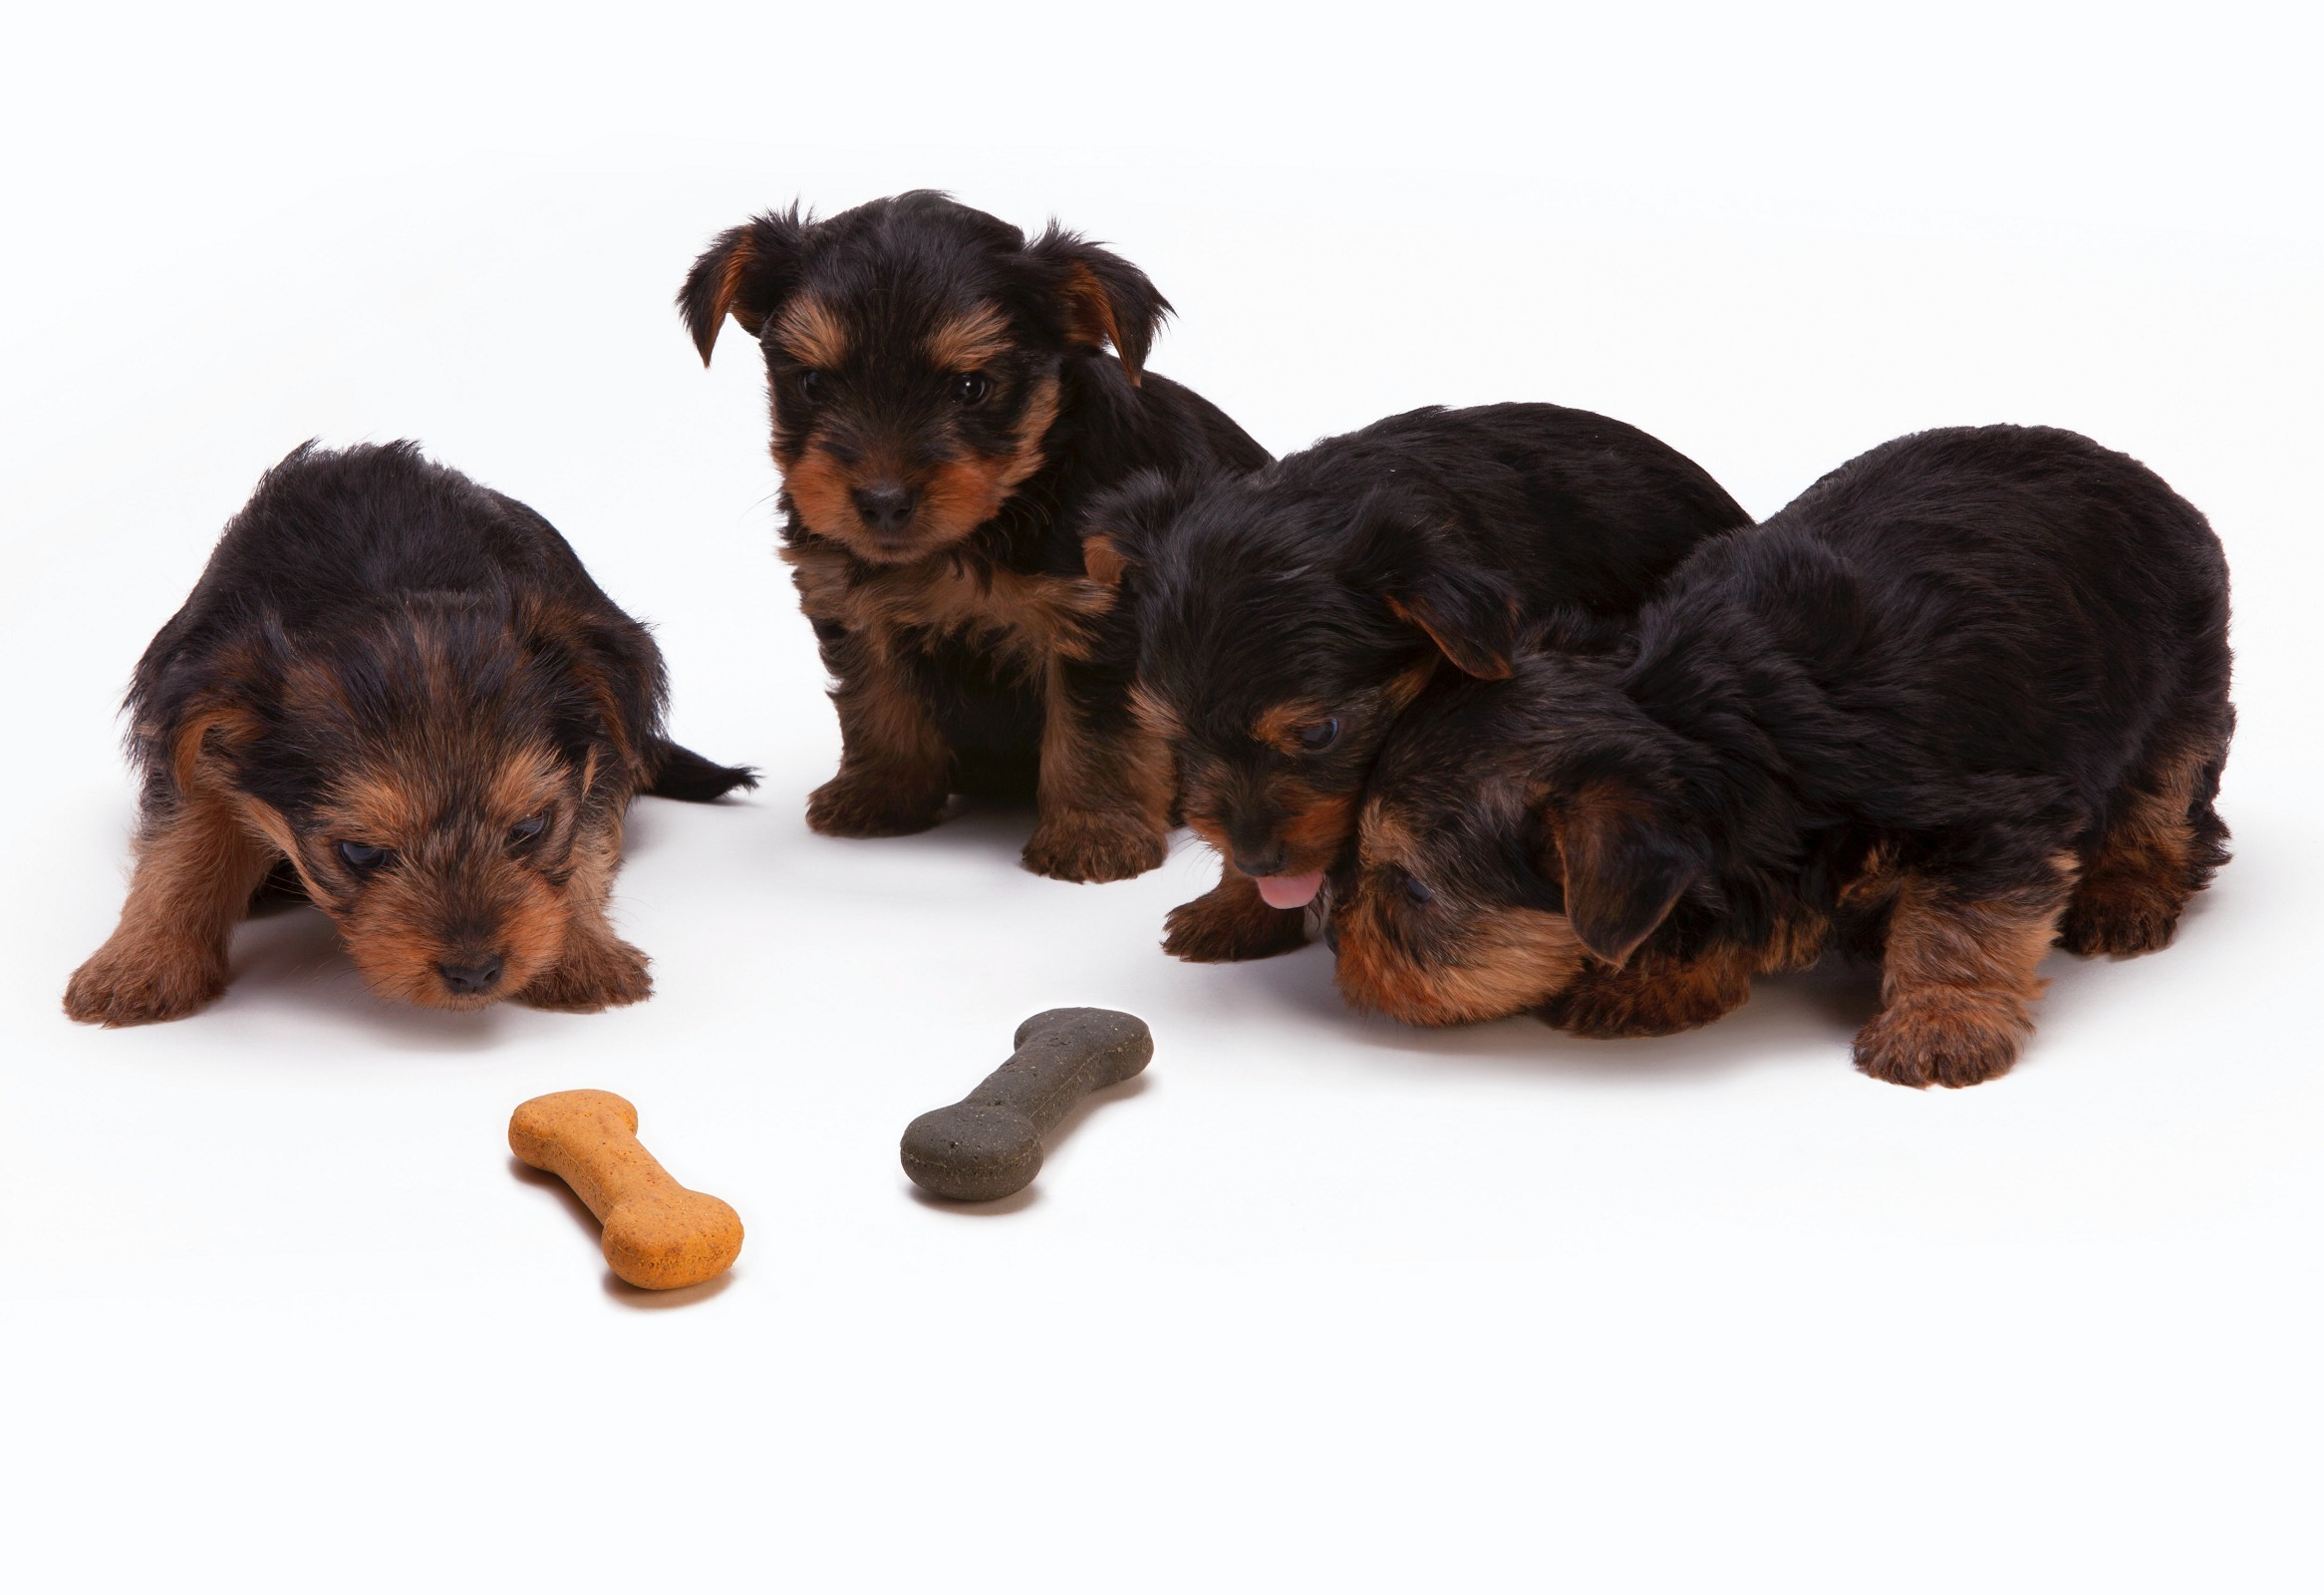 Know about Your Dog's Development Stages